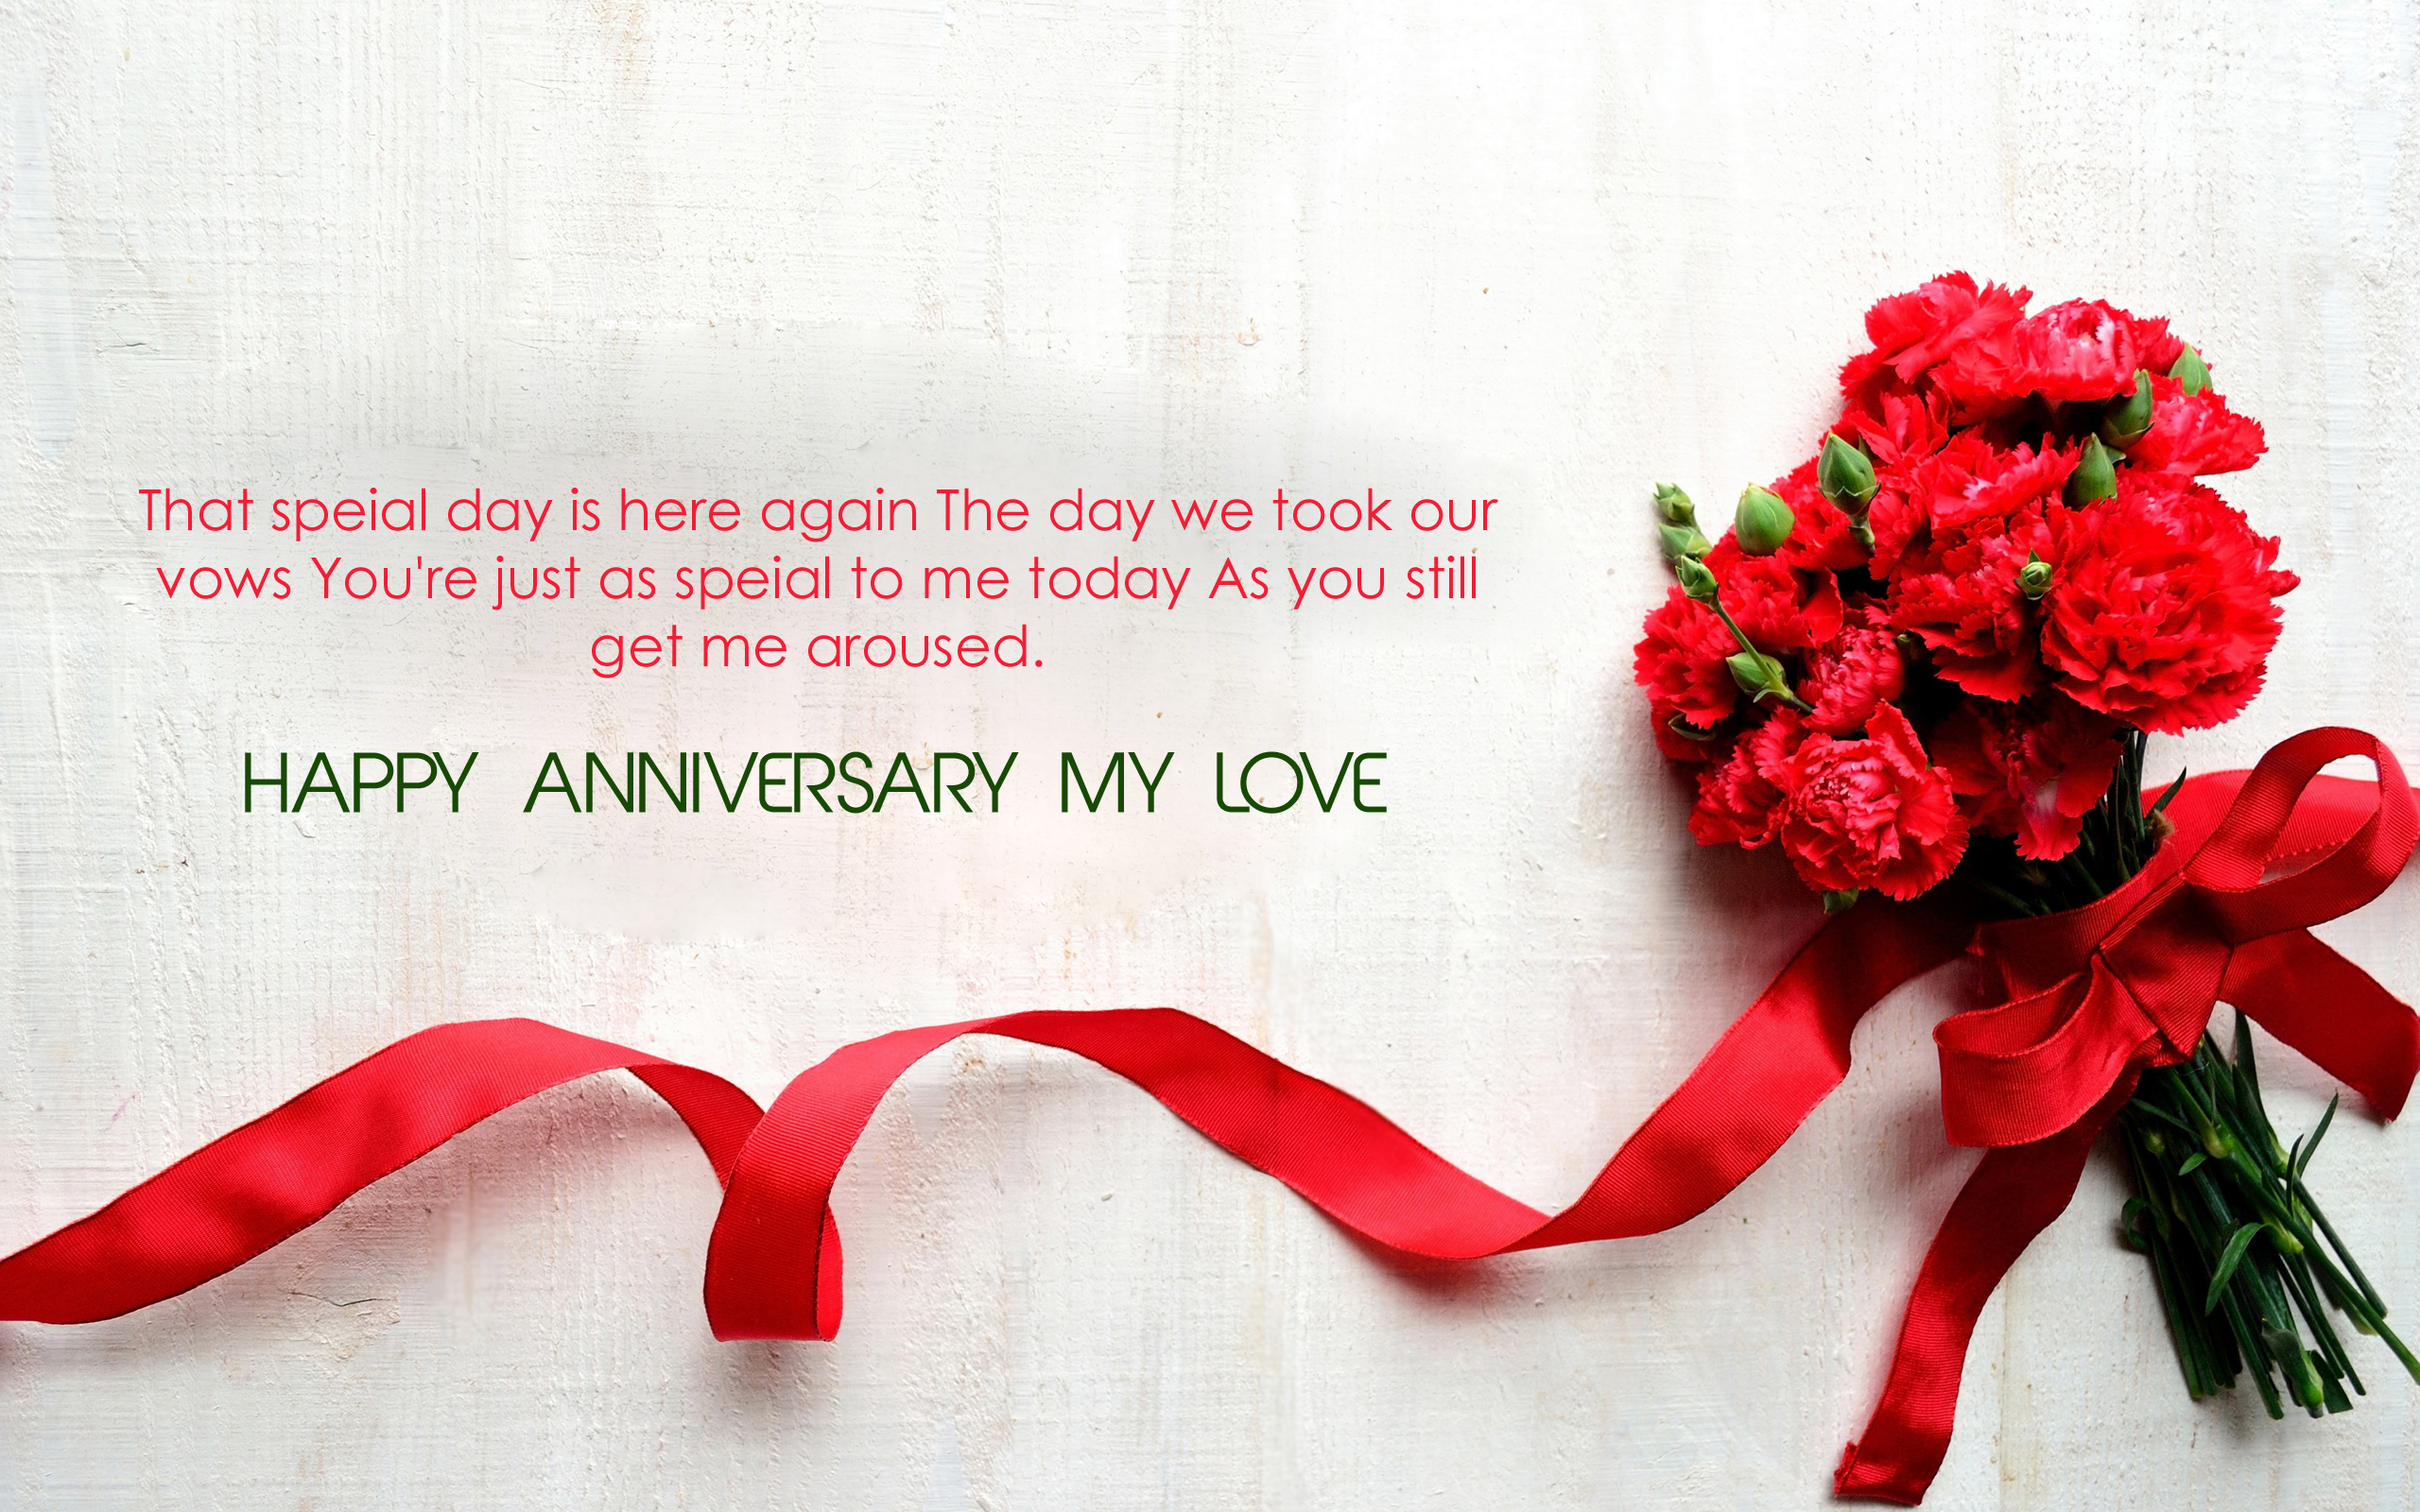 Happy Anniversary Images For Husband Thanking God For Our Wedding Anniversary 2560x1600 Download Hd Wallpaper Wallpapertip